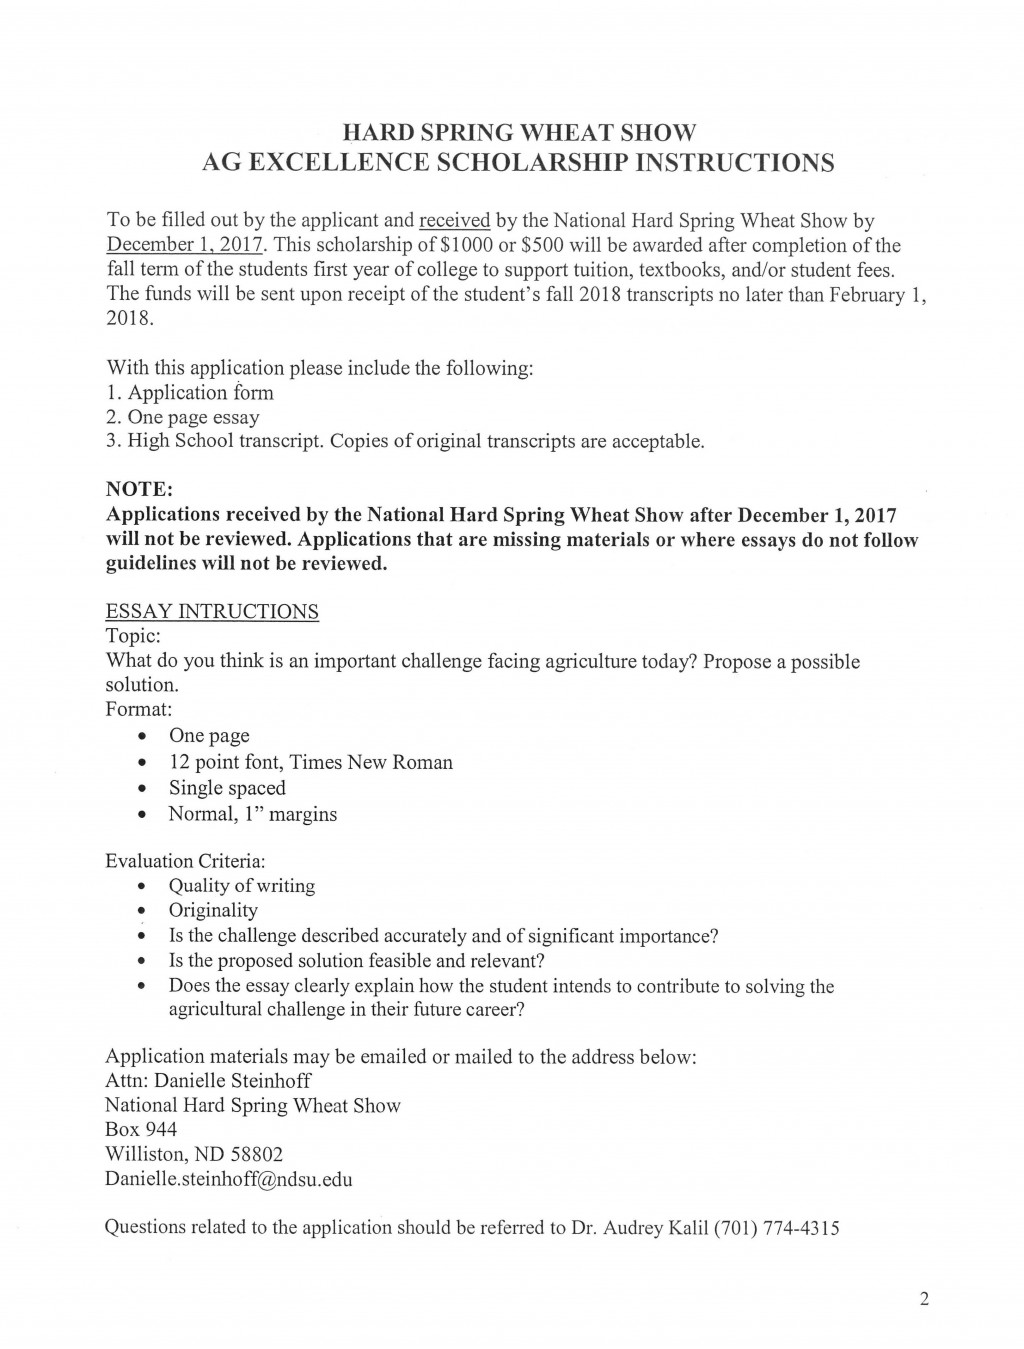 013 Scholarships Without Essays Essay Example Page 2 Stunning In Texas With No Required Scholarship For College Students Examples Large